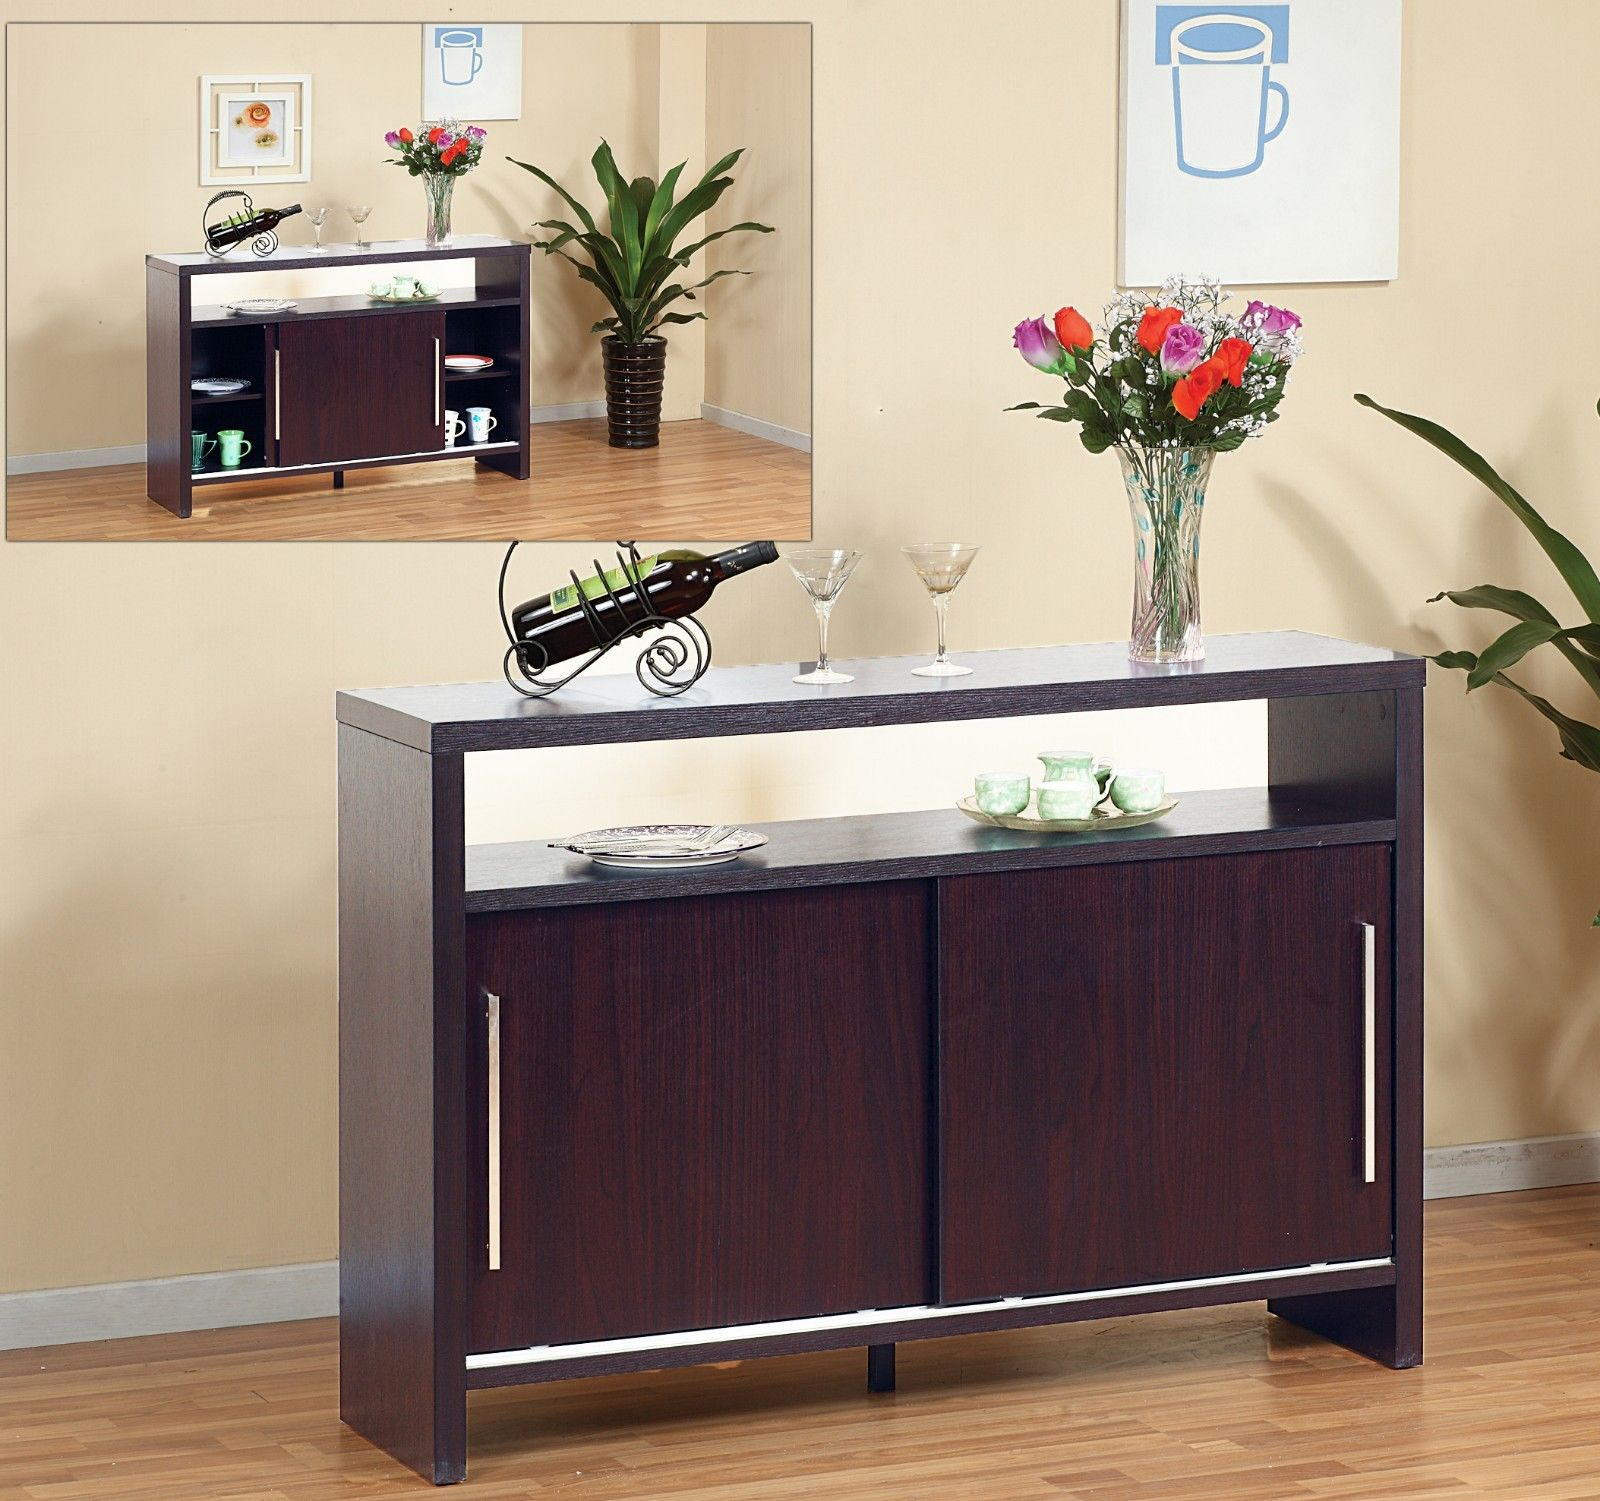 Modern Buffet Cabinet and Display Table w/ Sliding Doors